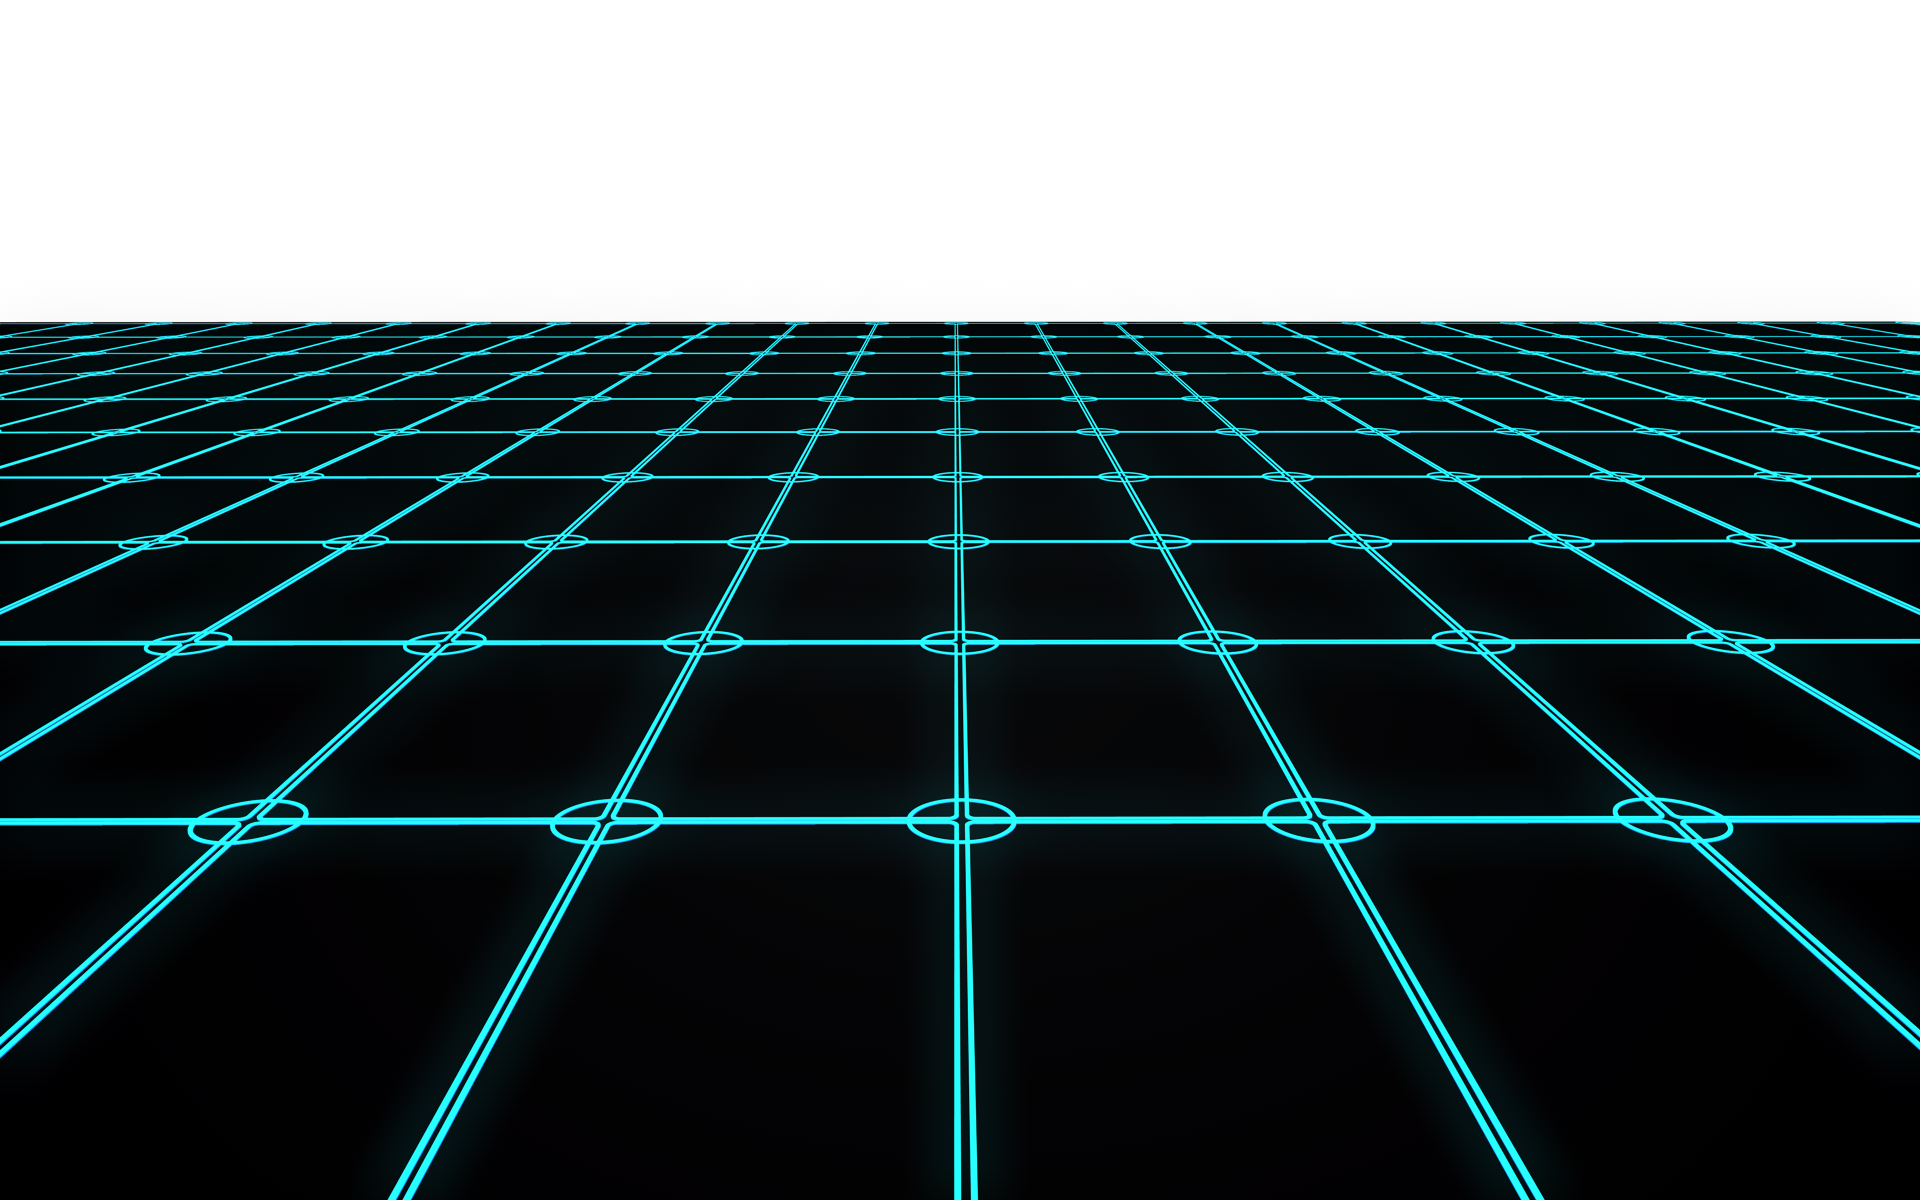 80s grid png. Another tron type floor